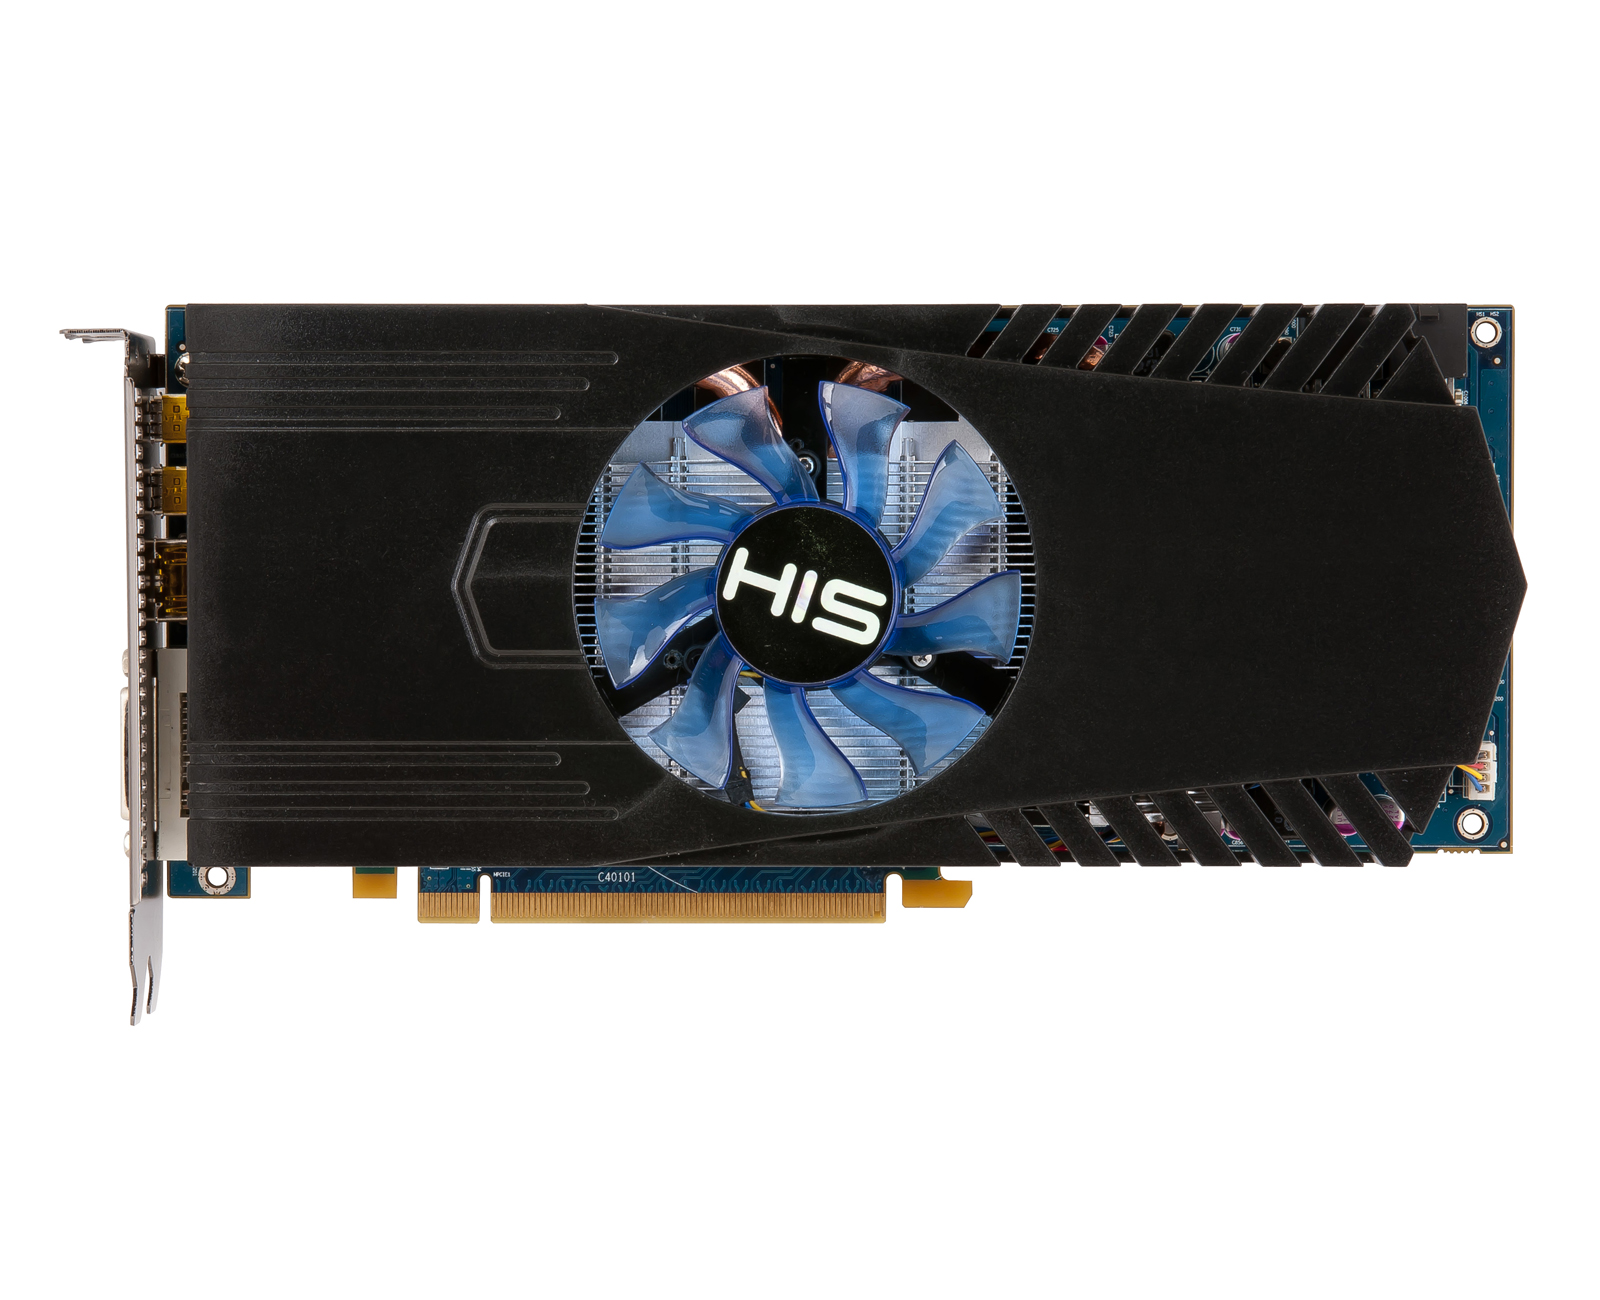 His 7870 Fan 2gb Gddr5 Pci E Dvi Hdmi 2xmini Dp Hd 7800 Series Power Supply Computer Merk Up 500w Desktop Graphics Products Graphic Cards